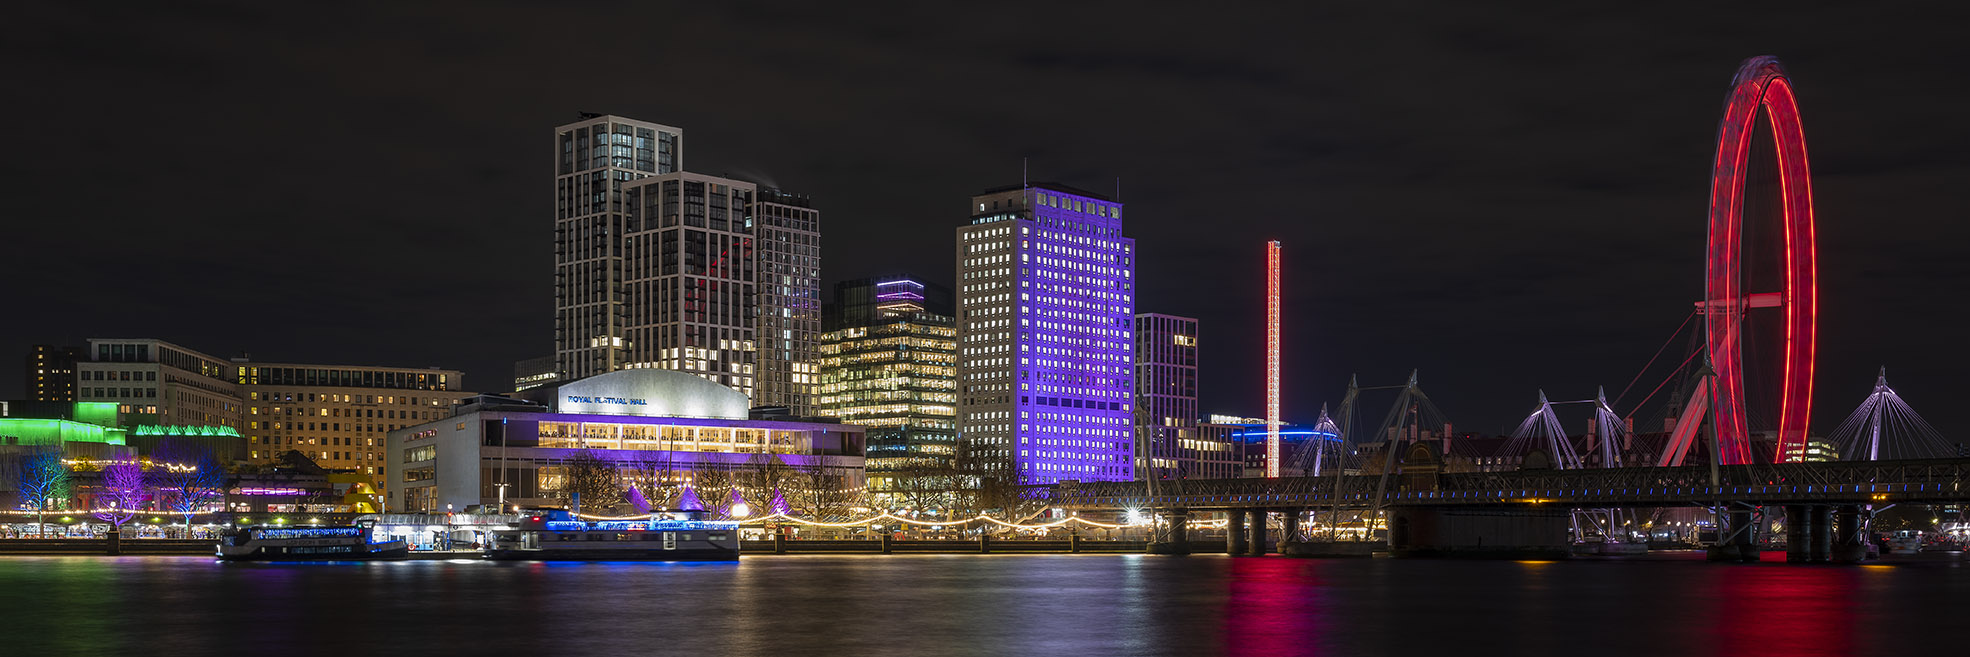 Panoramic image of London Skyline at night in glorious colour